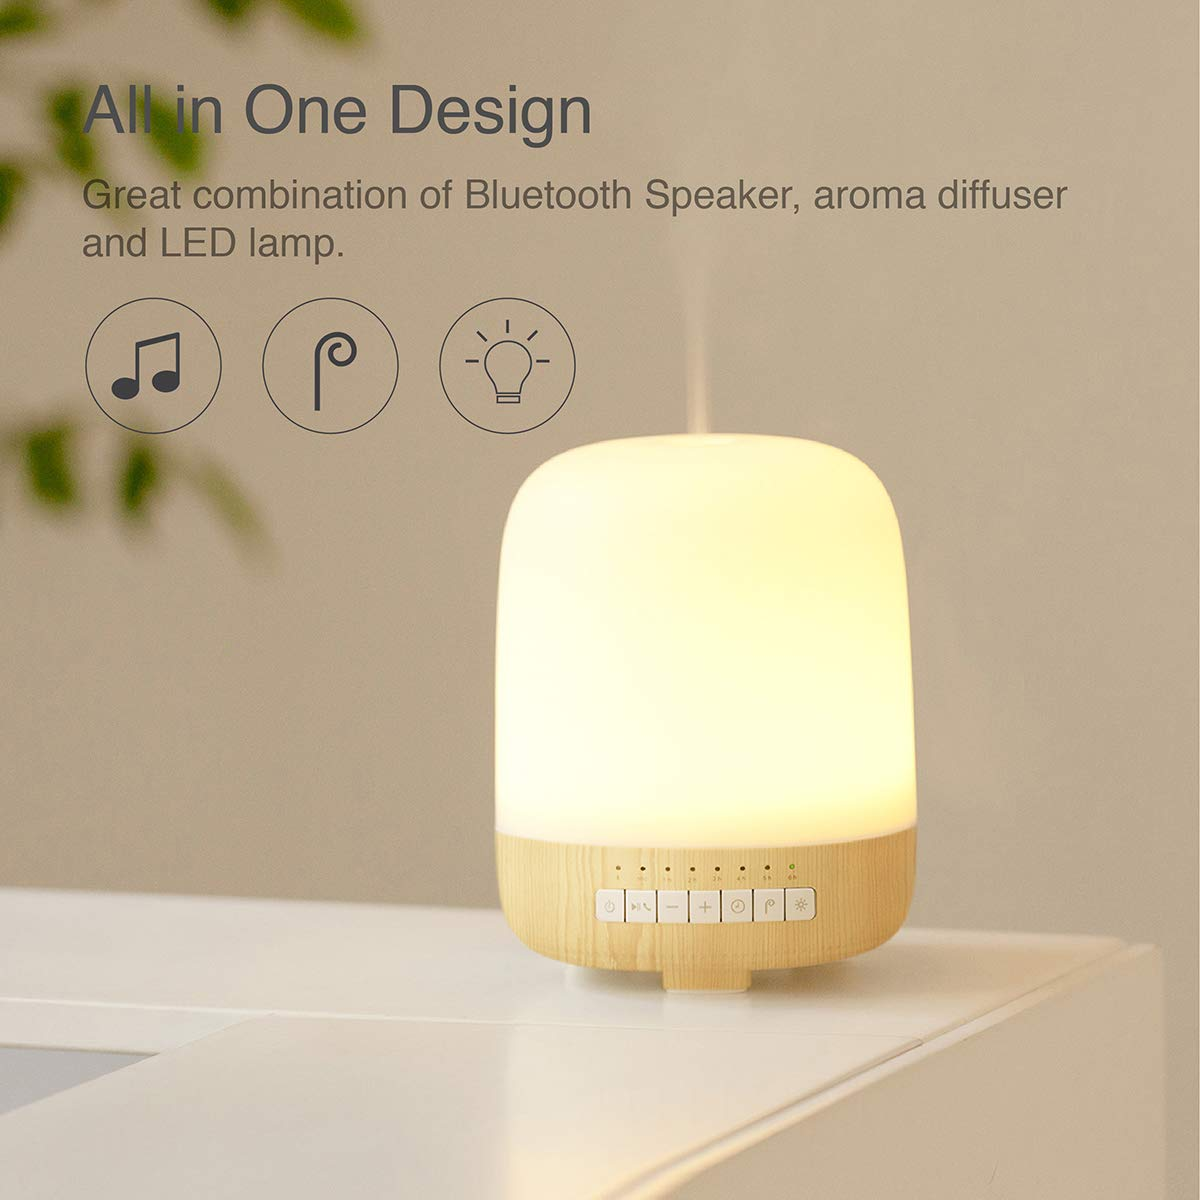 emoi 3-in-1 Aromatherapy Diffuser, Bluetooth Speaker and Multiple Colours Lamp (200ml) by emoi (Image #2)